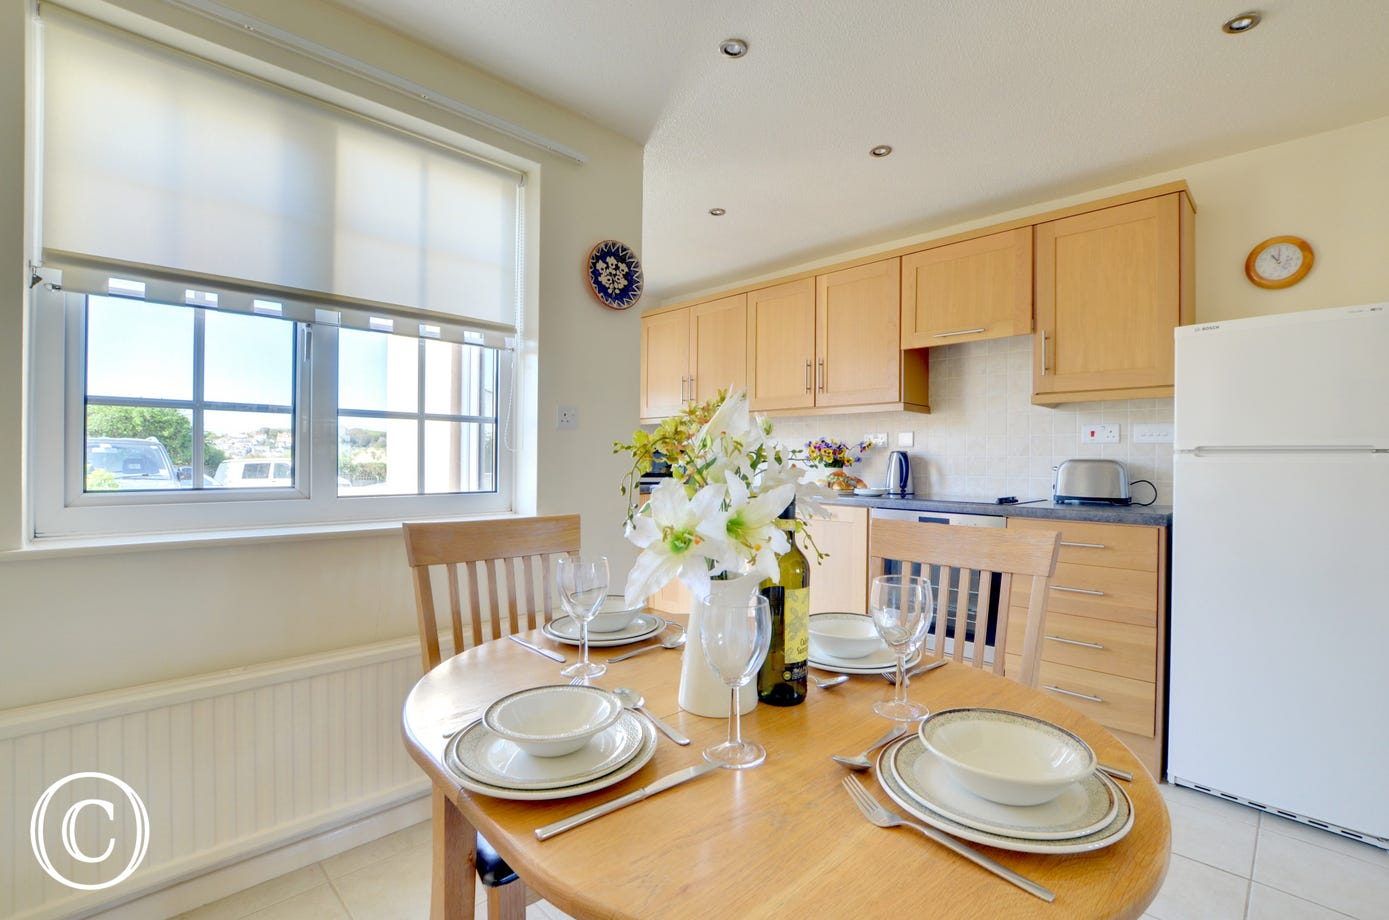 Enjoy meals together in the bright dining area